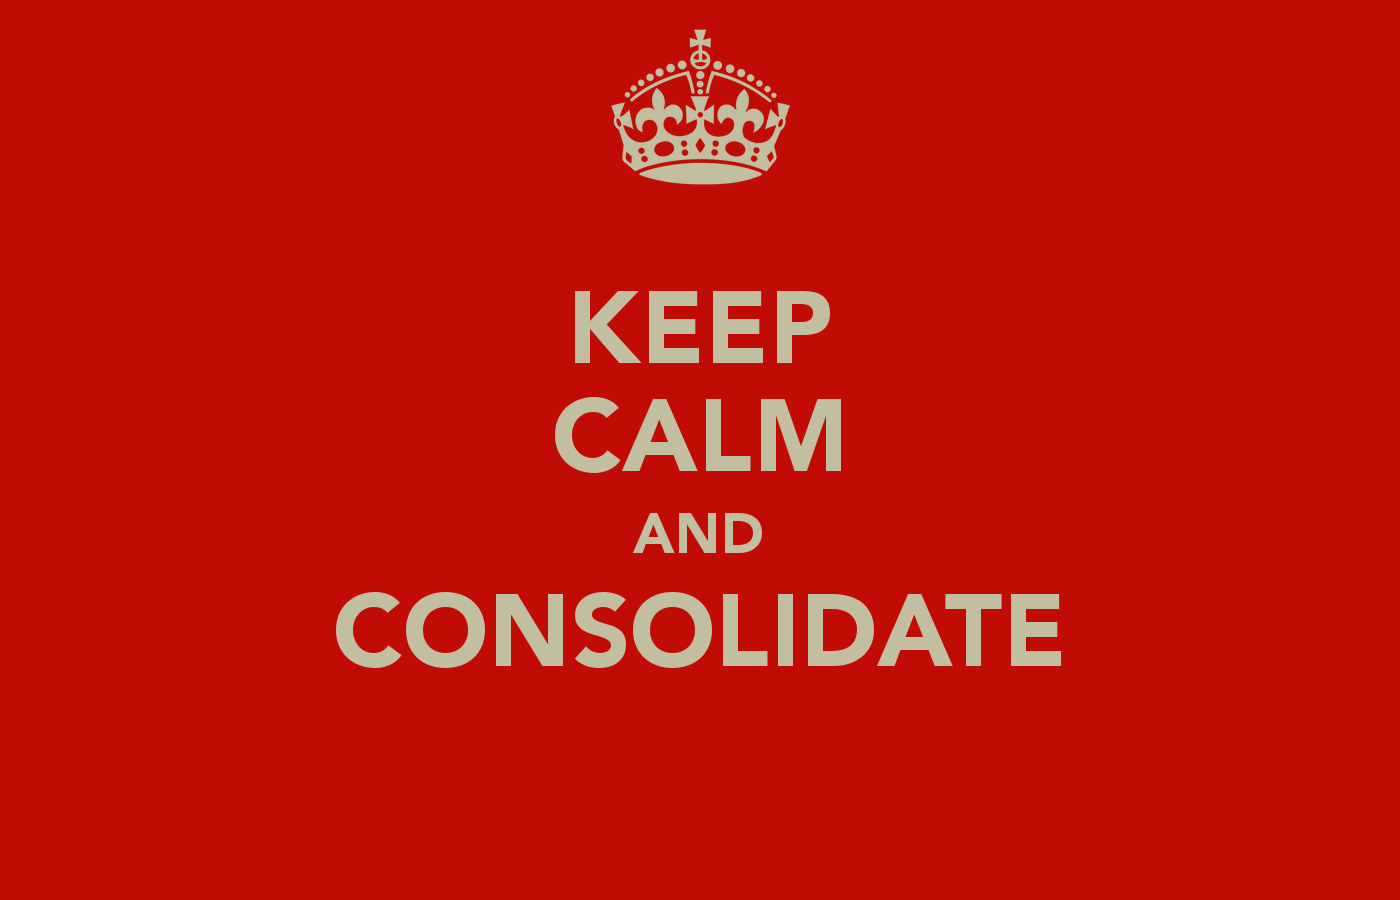 keep-calm-and-consolidate-39 (2).png